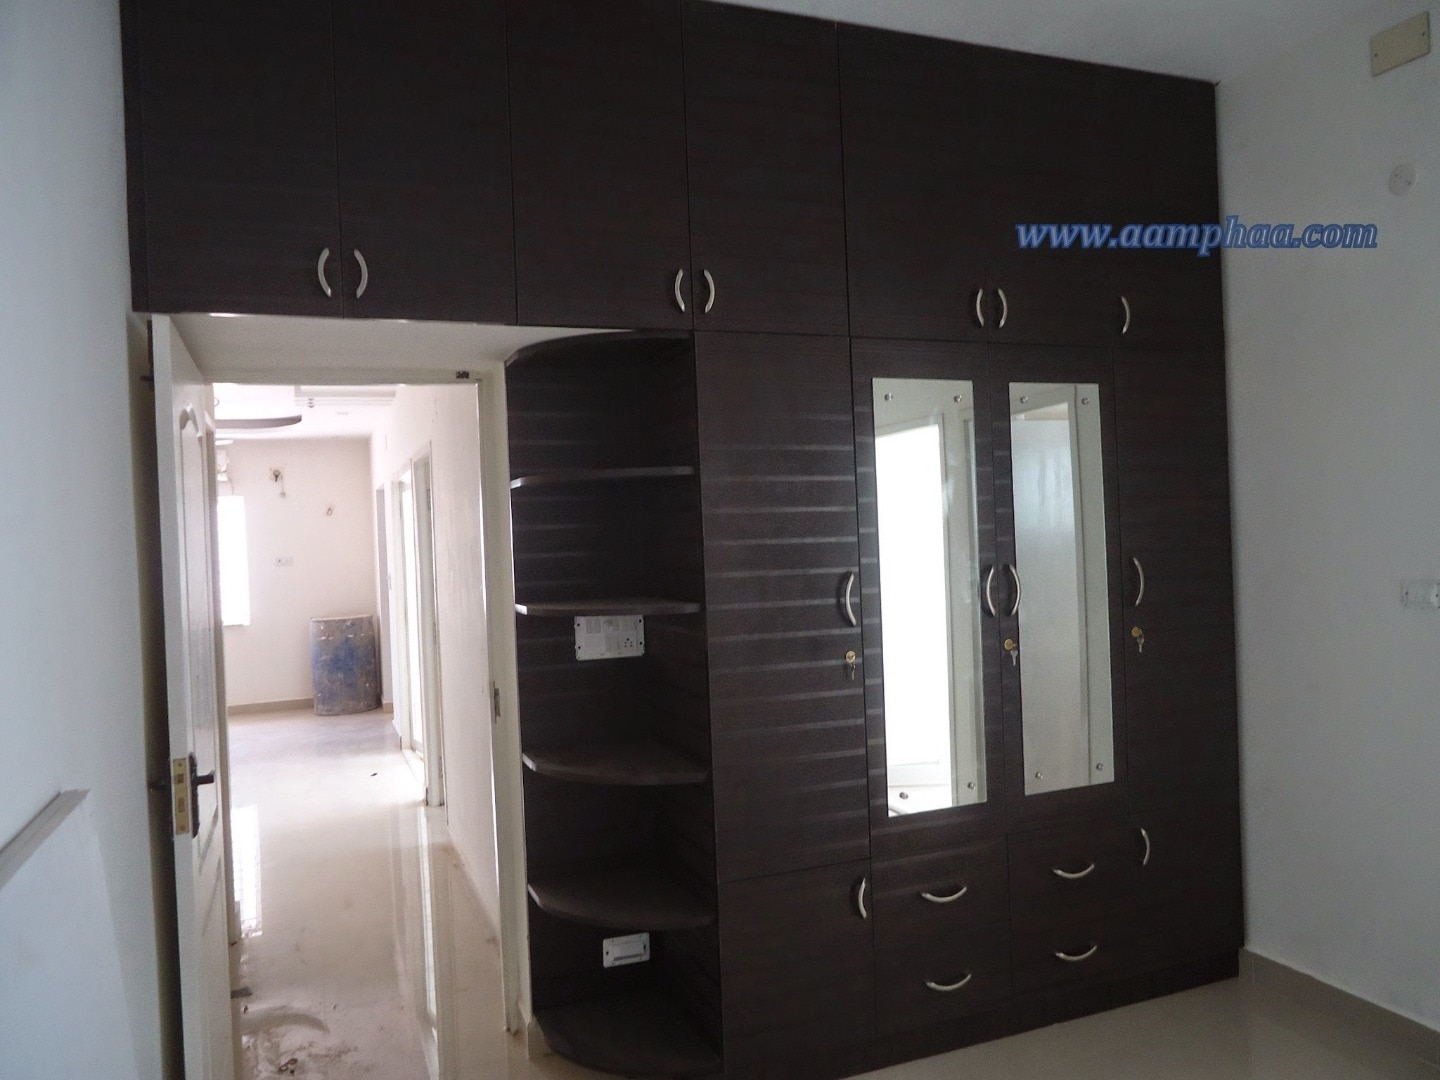 Images aamphaa showroom in chennai for Bedroom designs tamilnadu